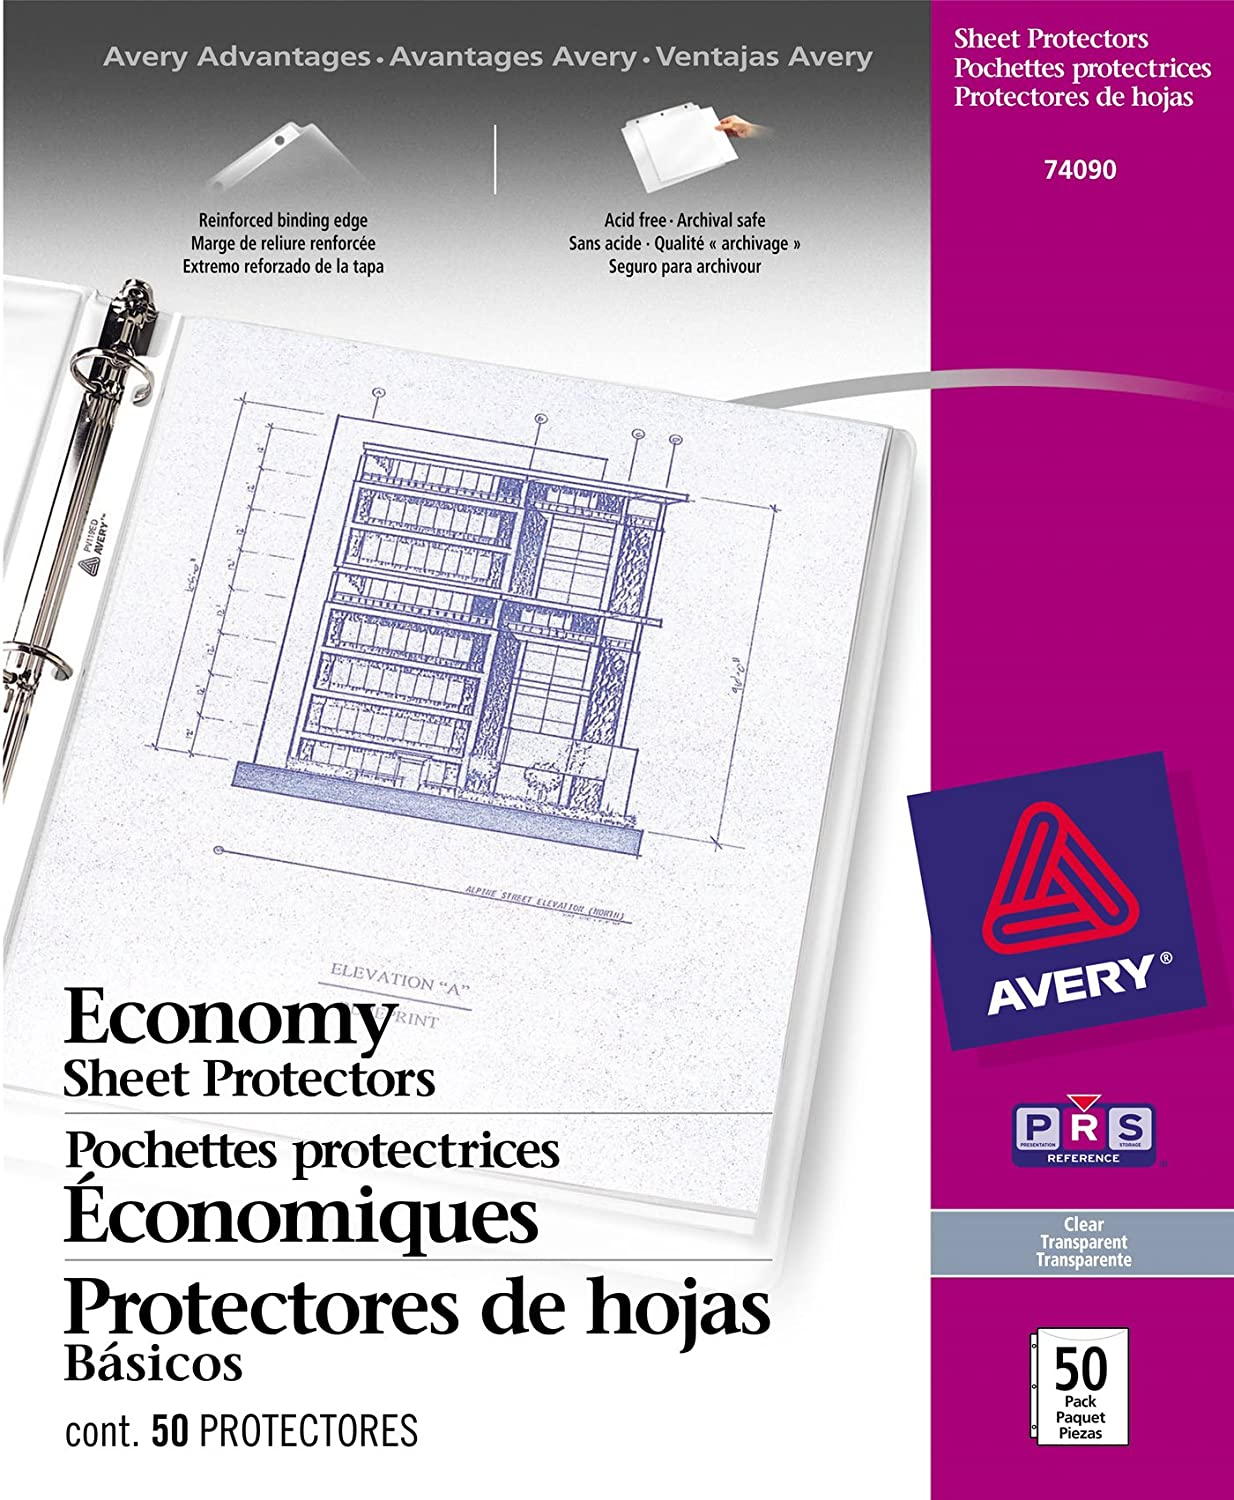 Avery Acid Free Economy Sheet Protectors, Clear, Box of 50 (74090)